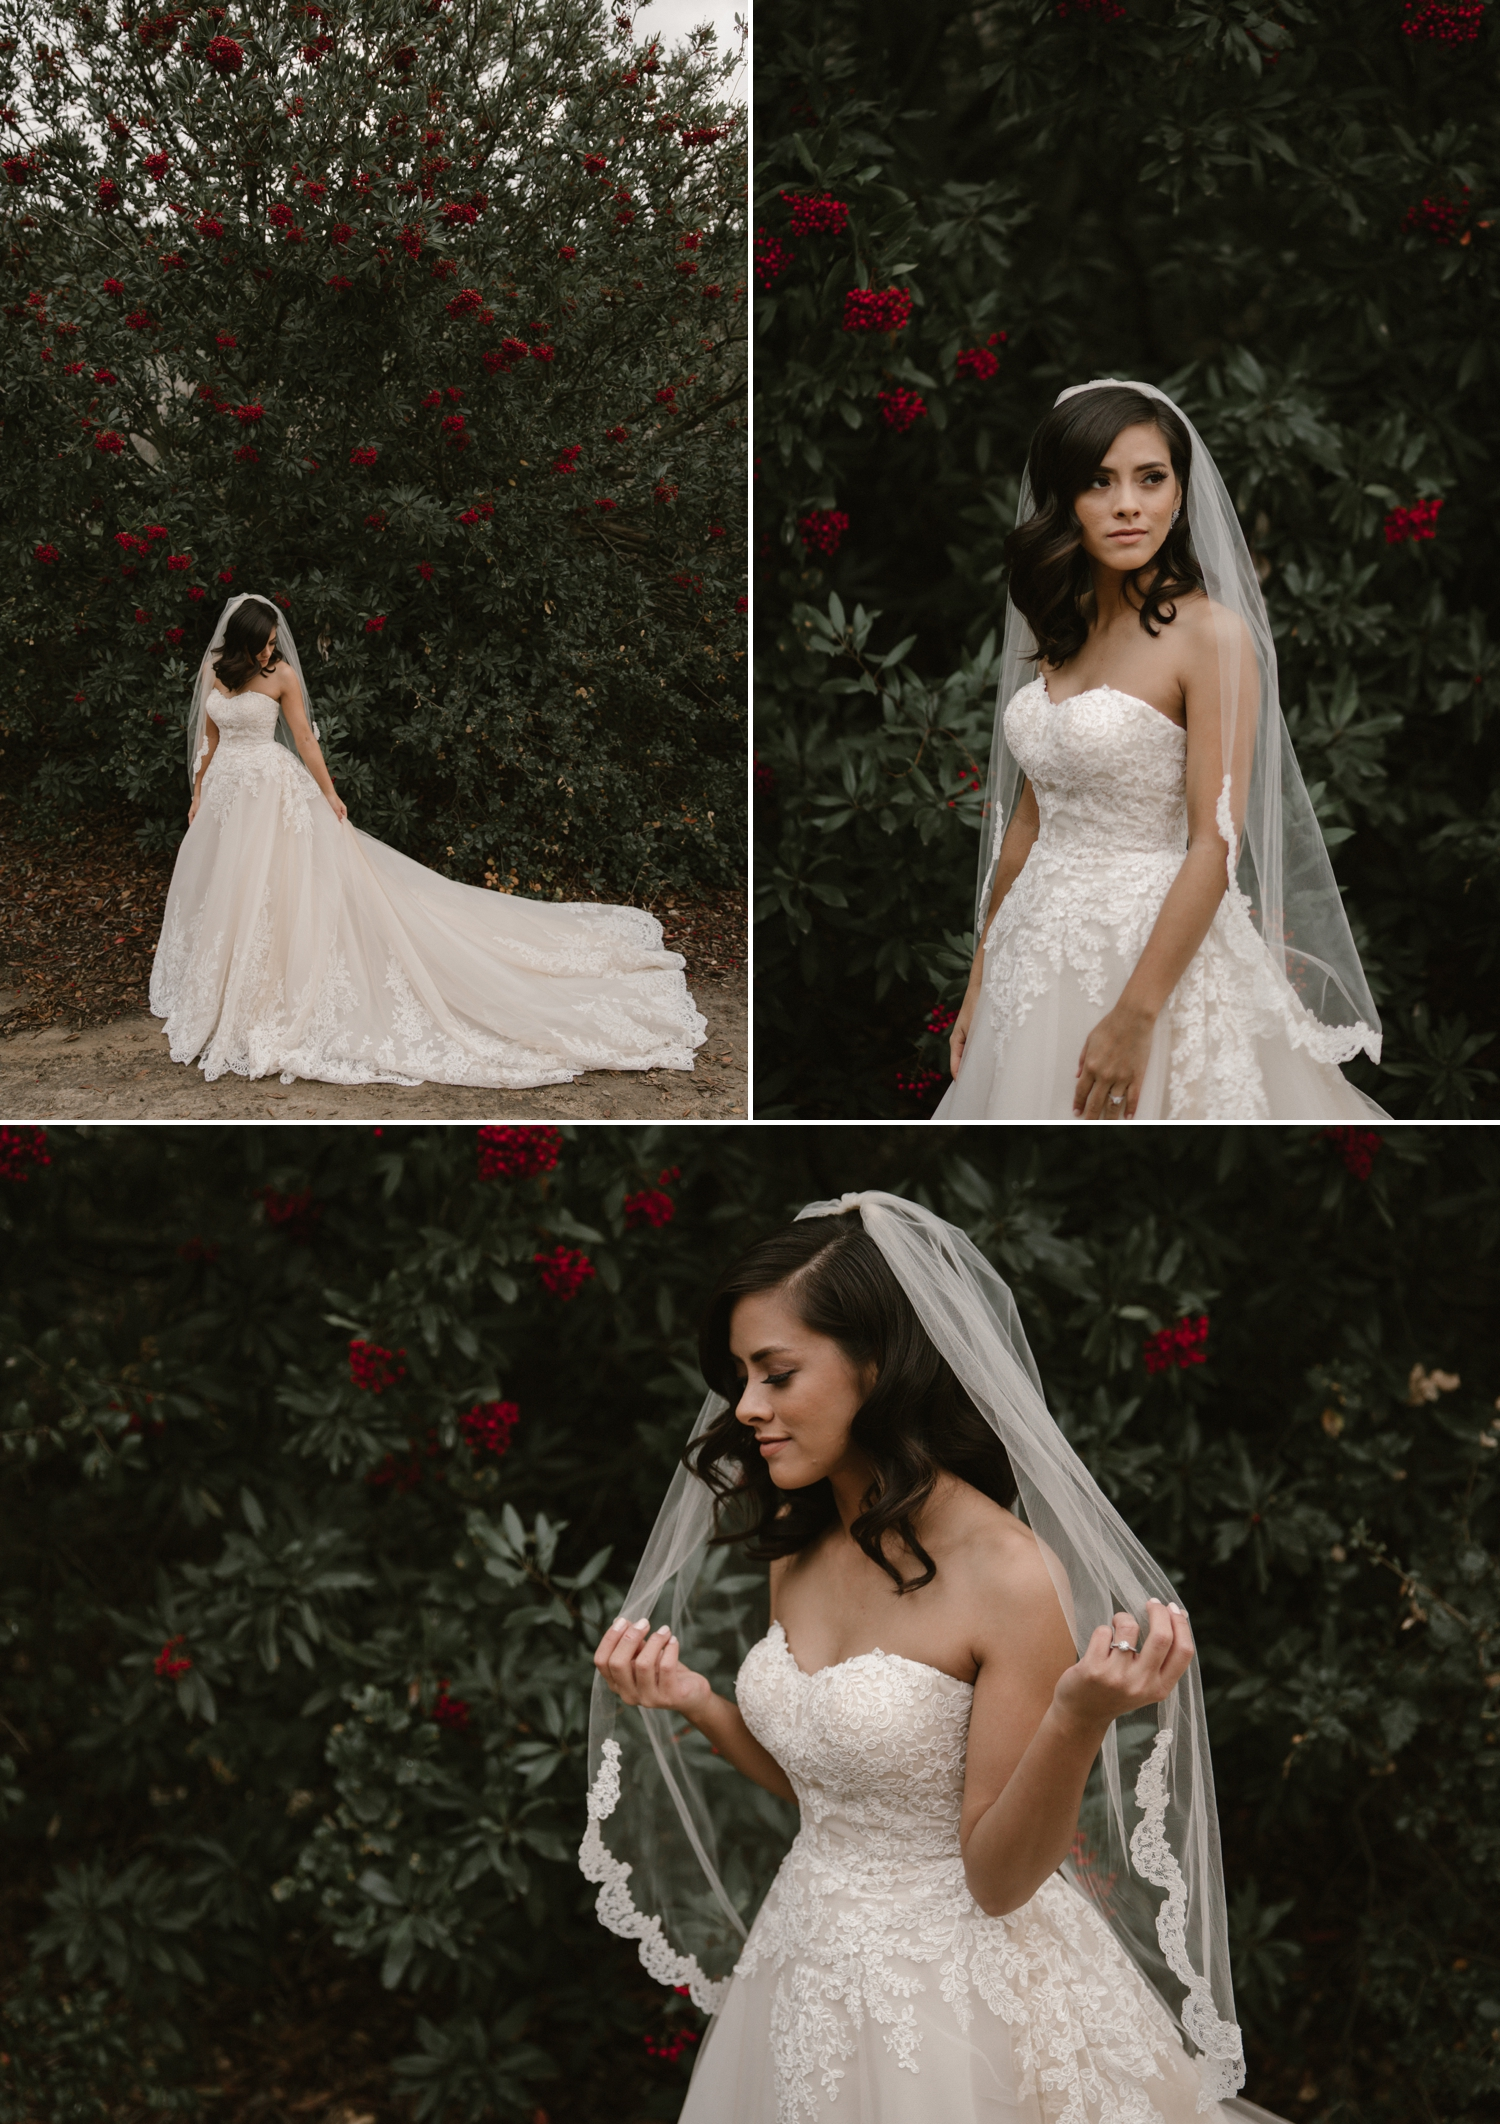 Bridal portraits at Oak Canyon Nature Center by Paige Nelson